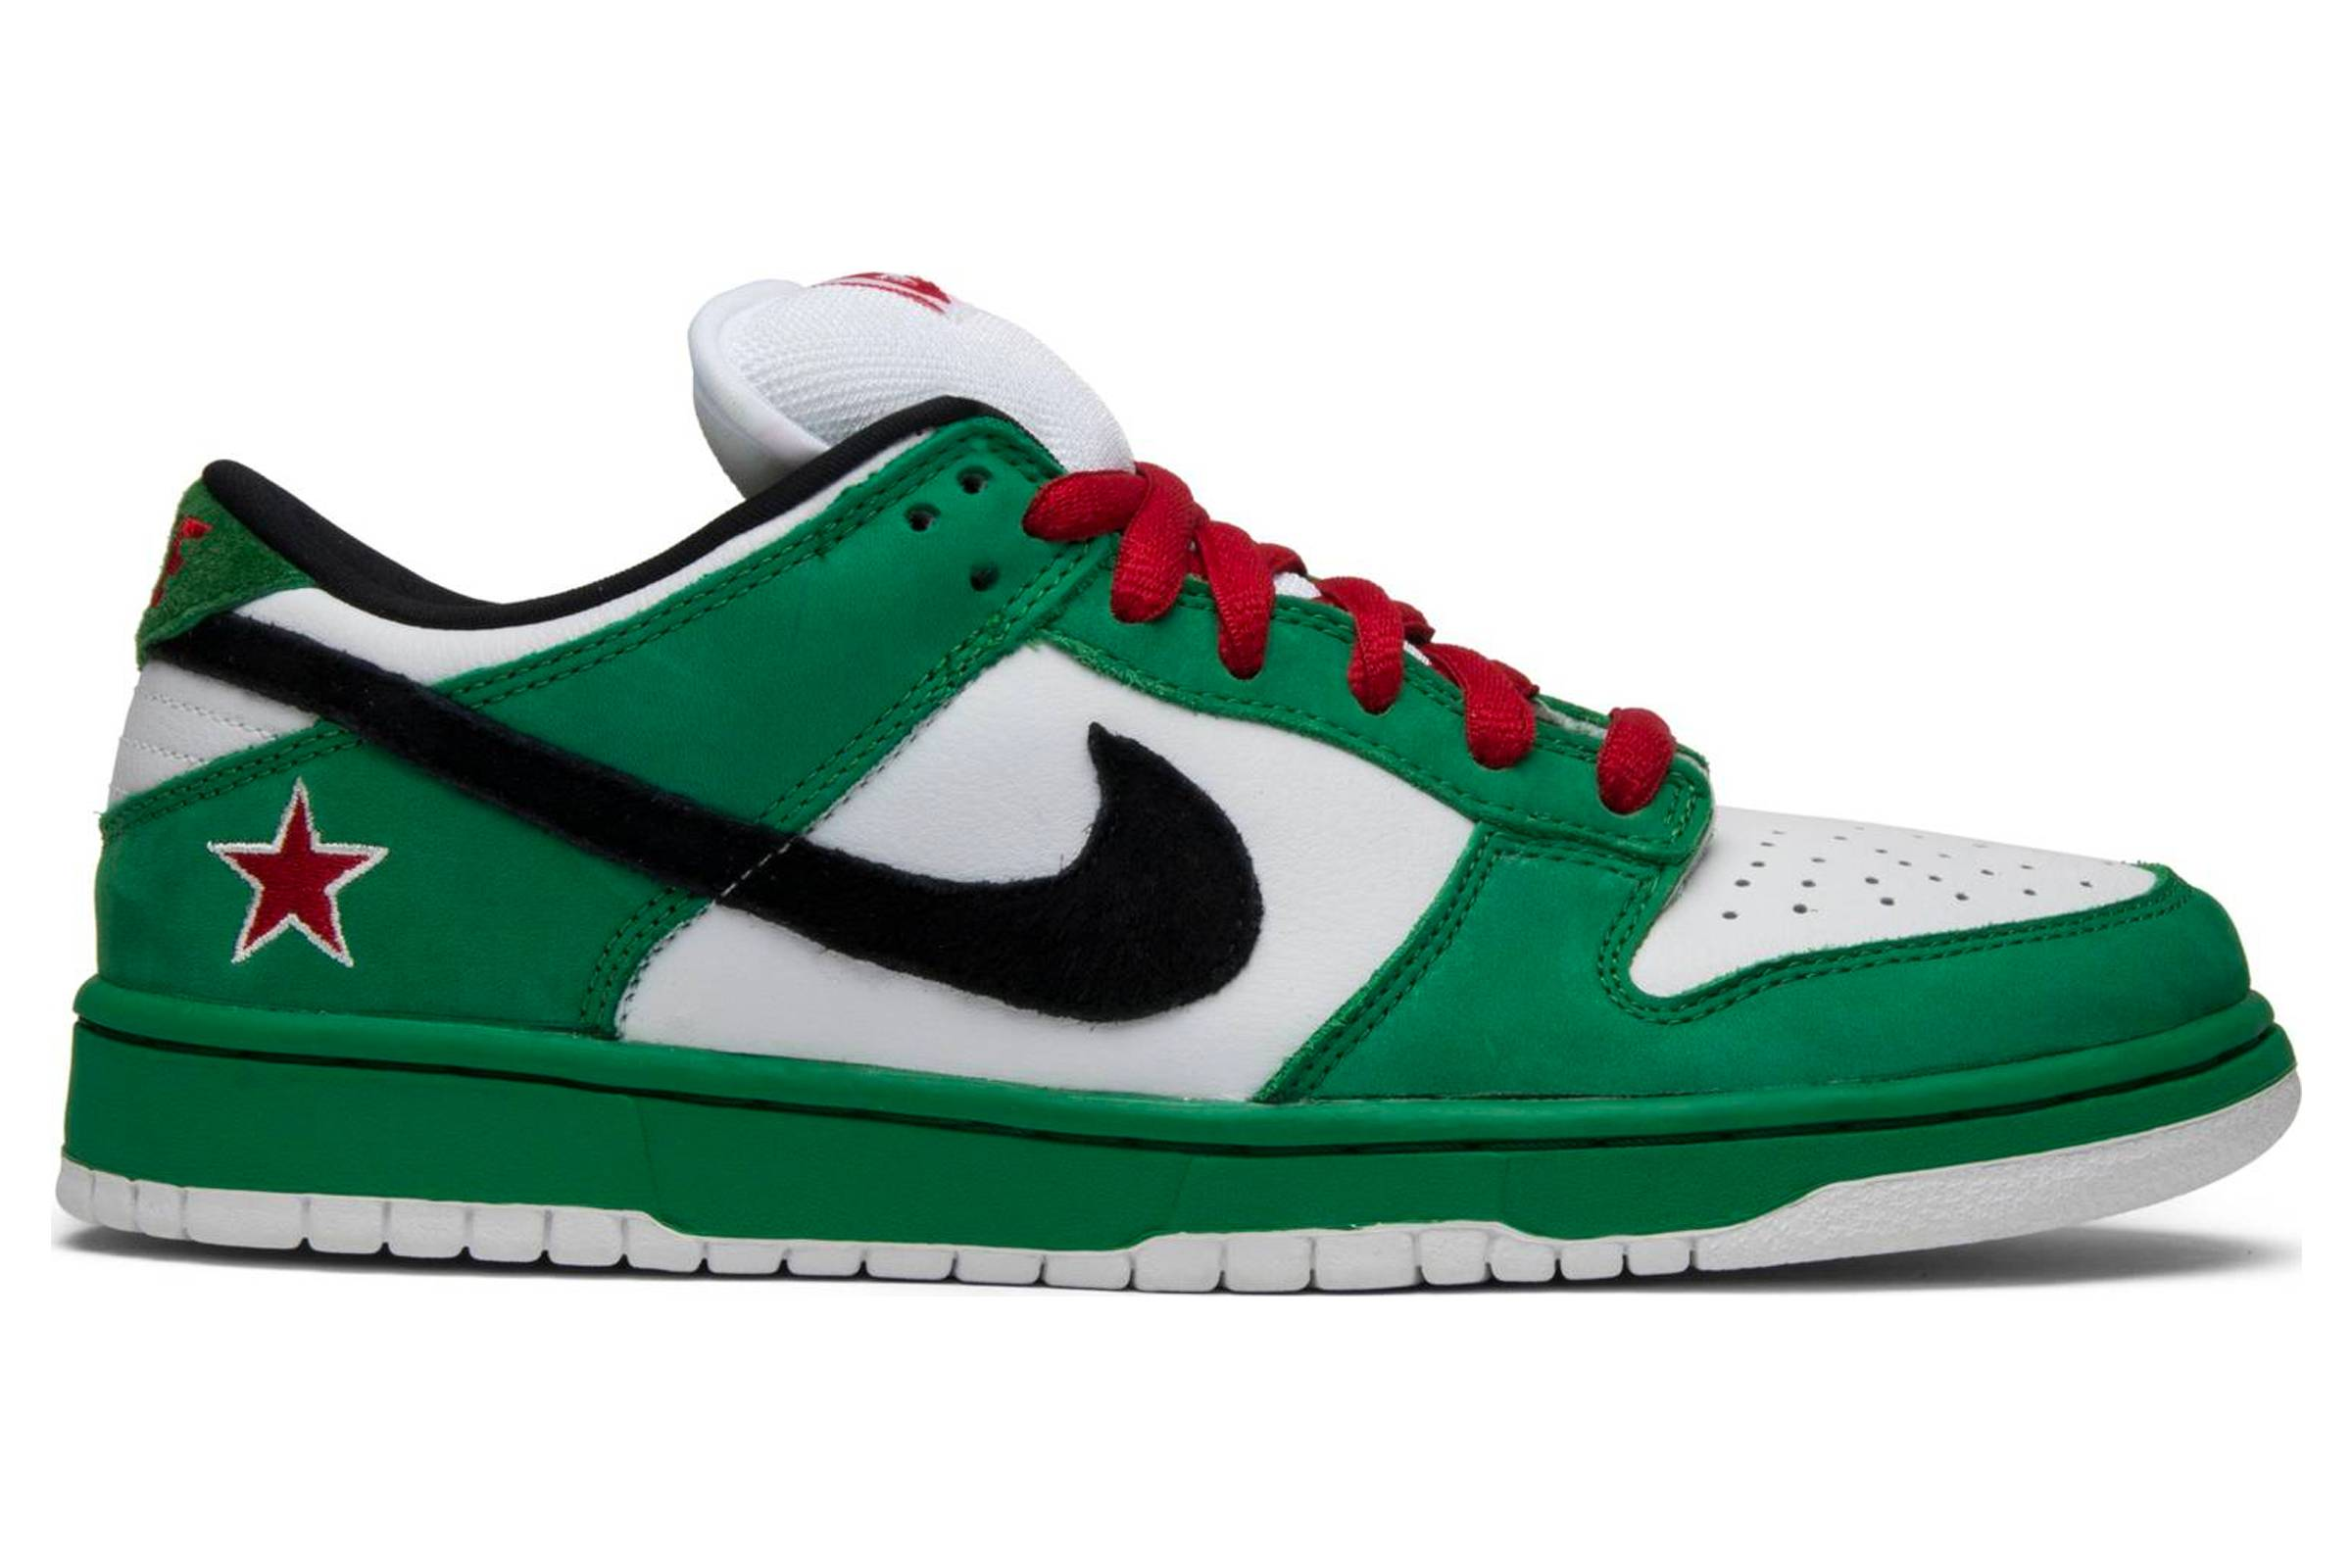 dc4f5e11990 Embrace the Fat Tongue  A Brief History of the Nike SB Dunk - Sb ...